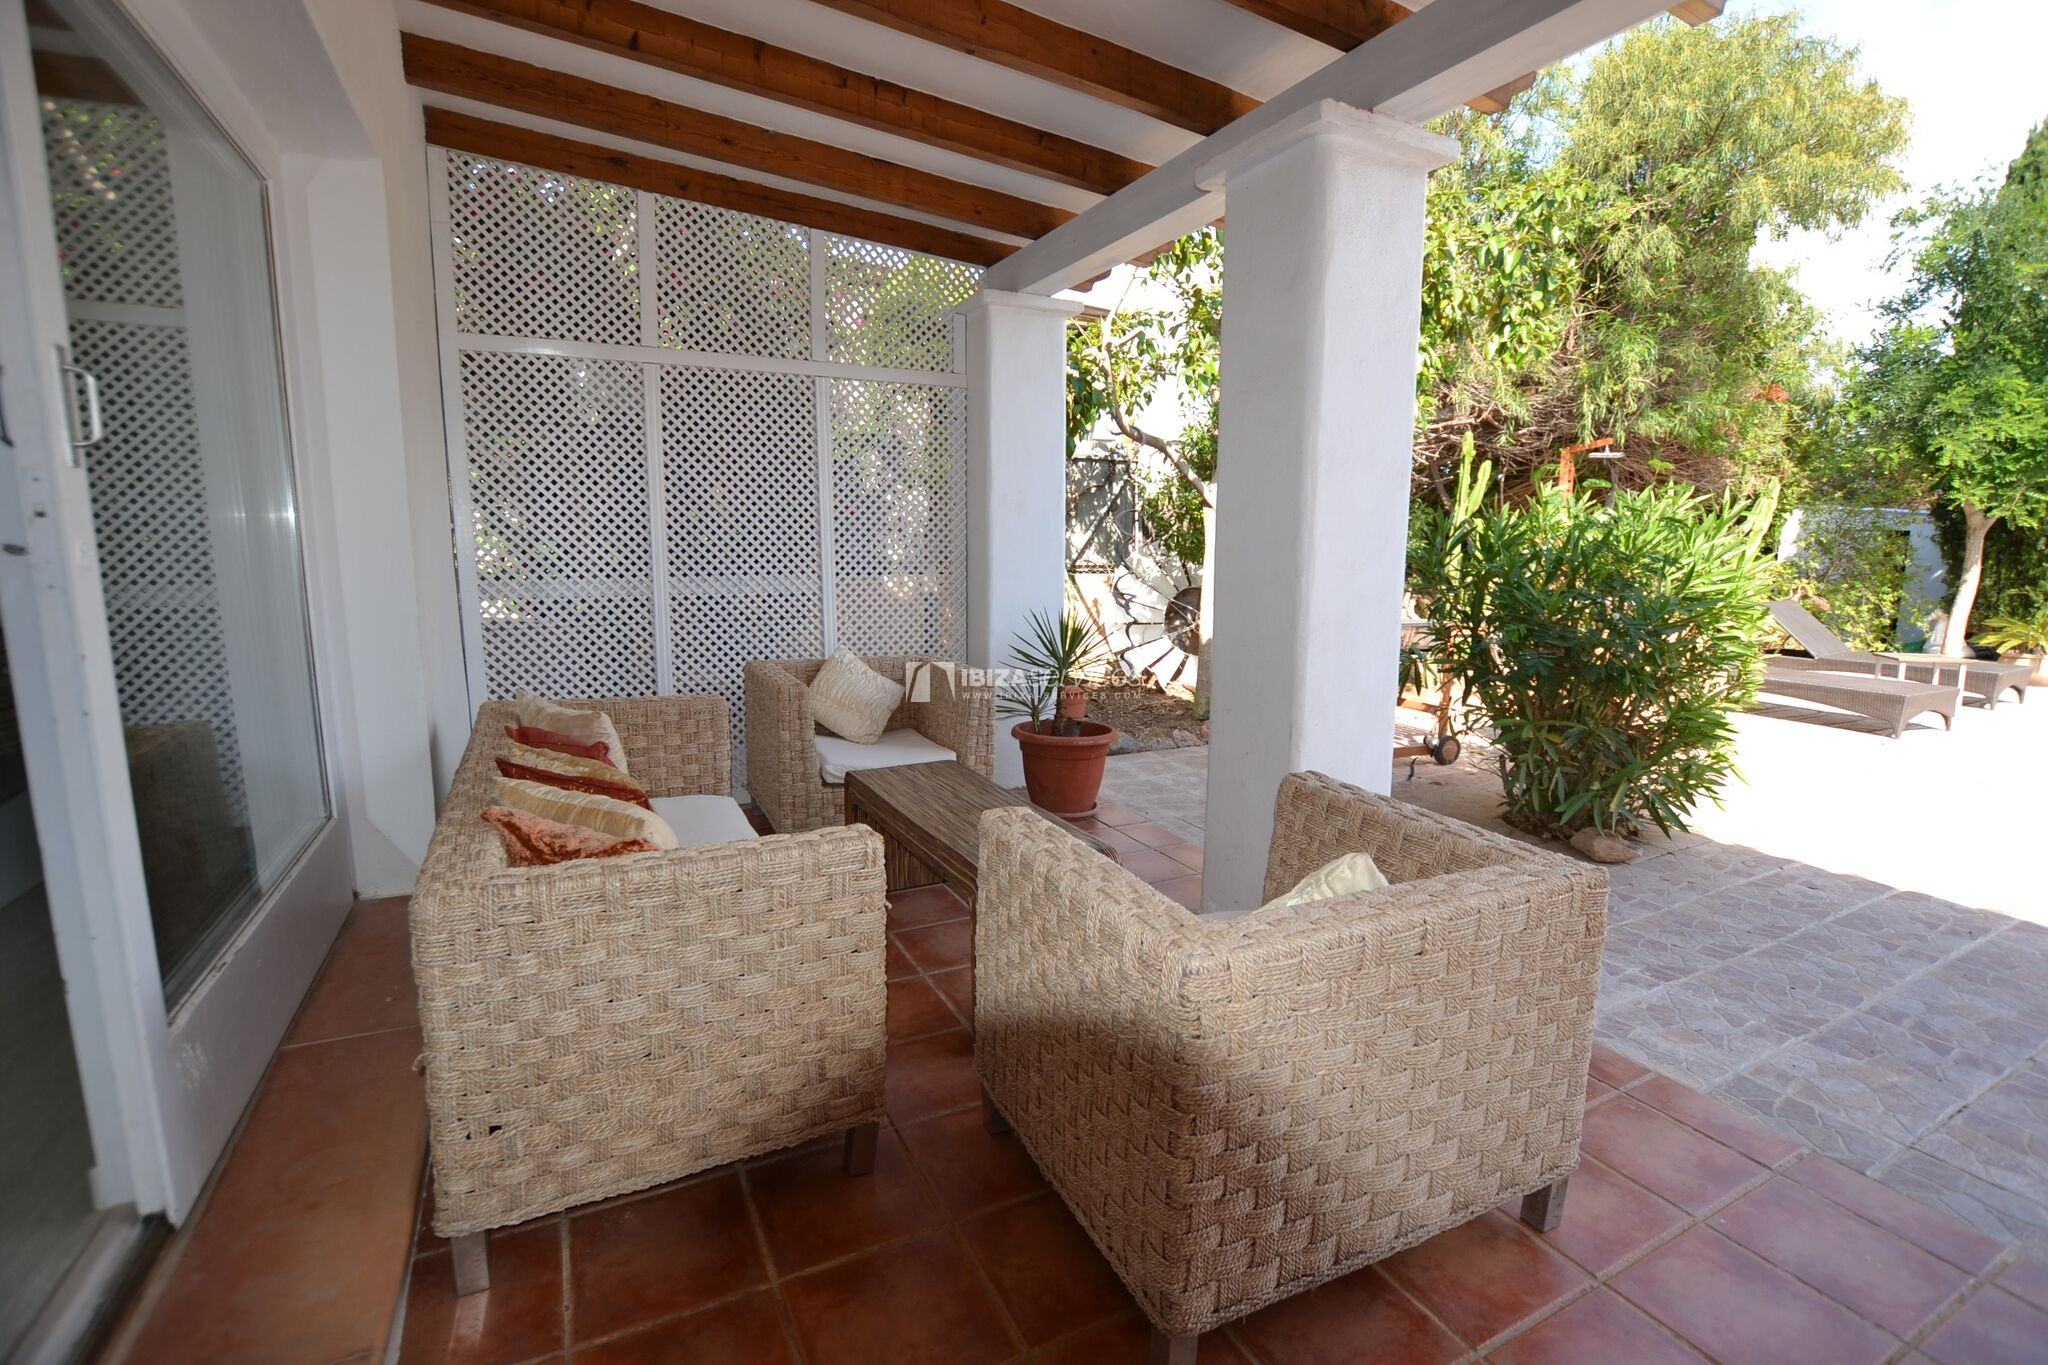 Charming house weekly rental San jordi perspectiva 12